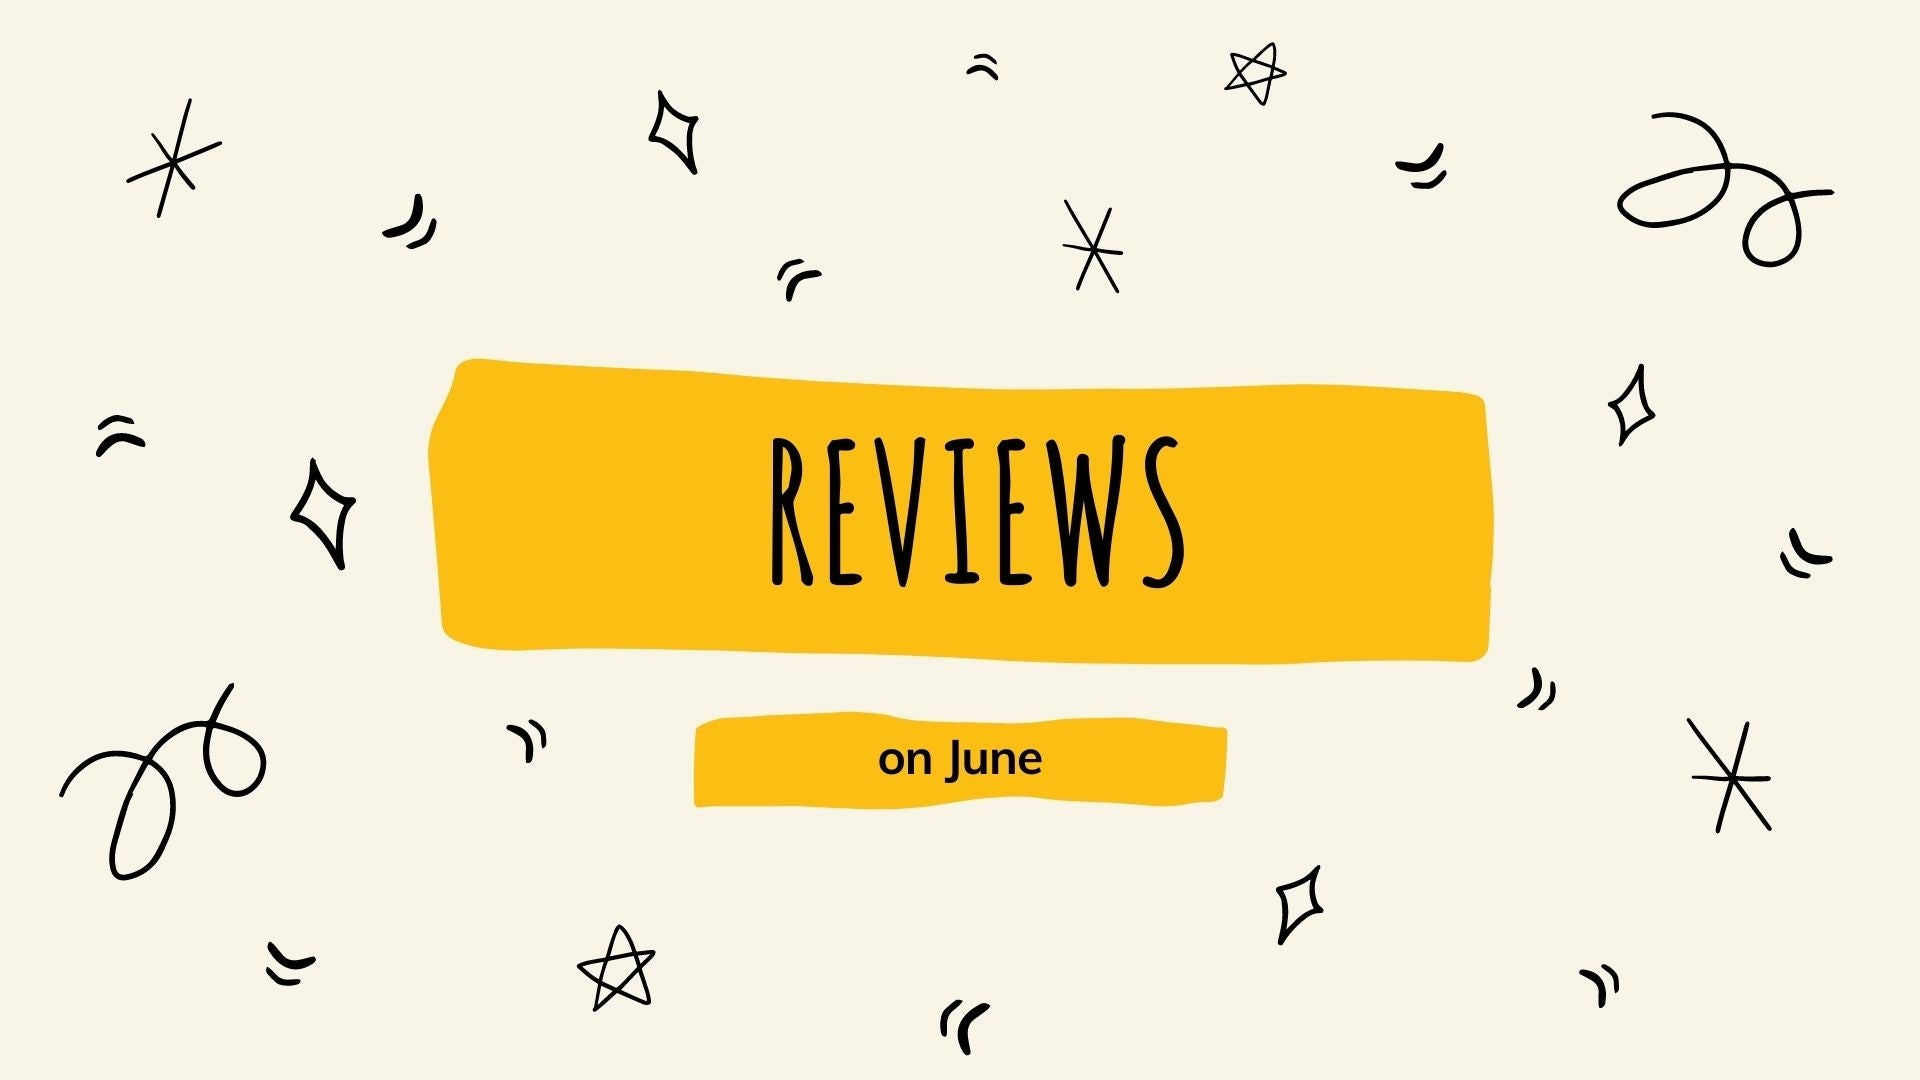 Latest Customer Reviews on June